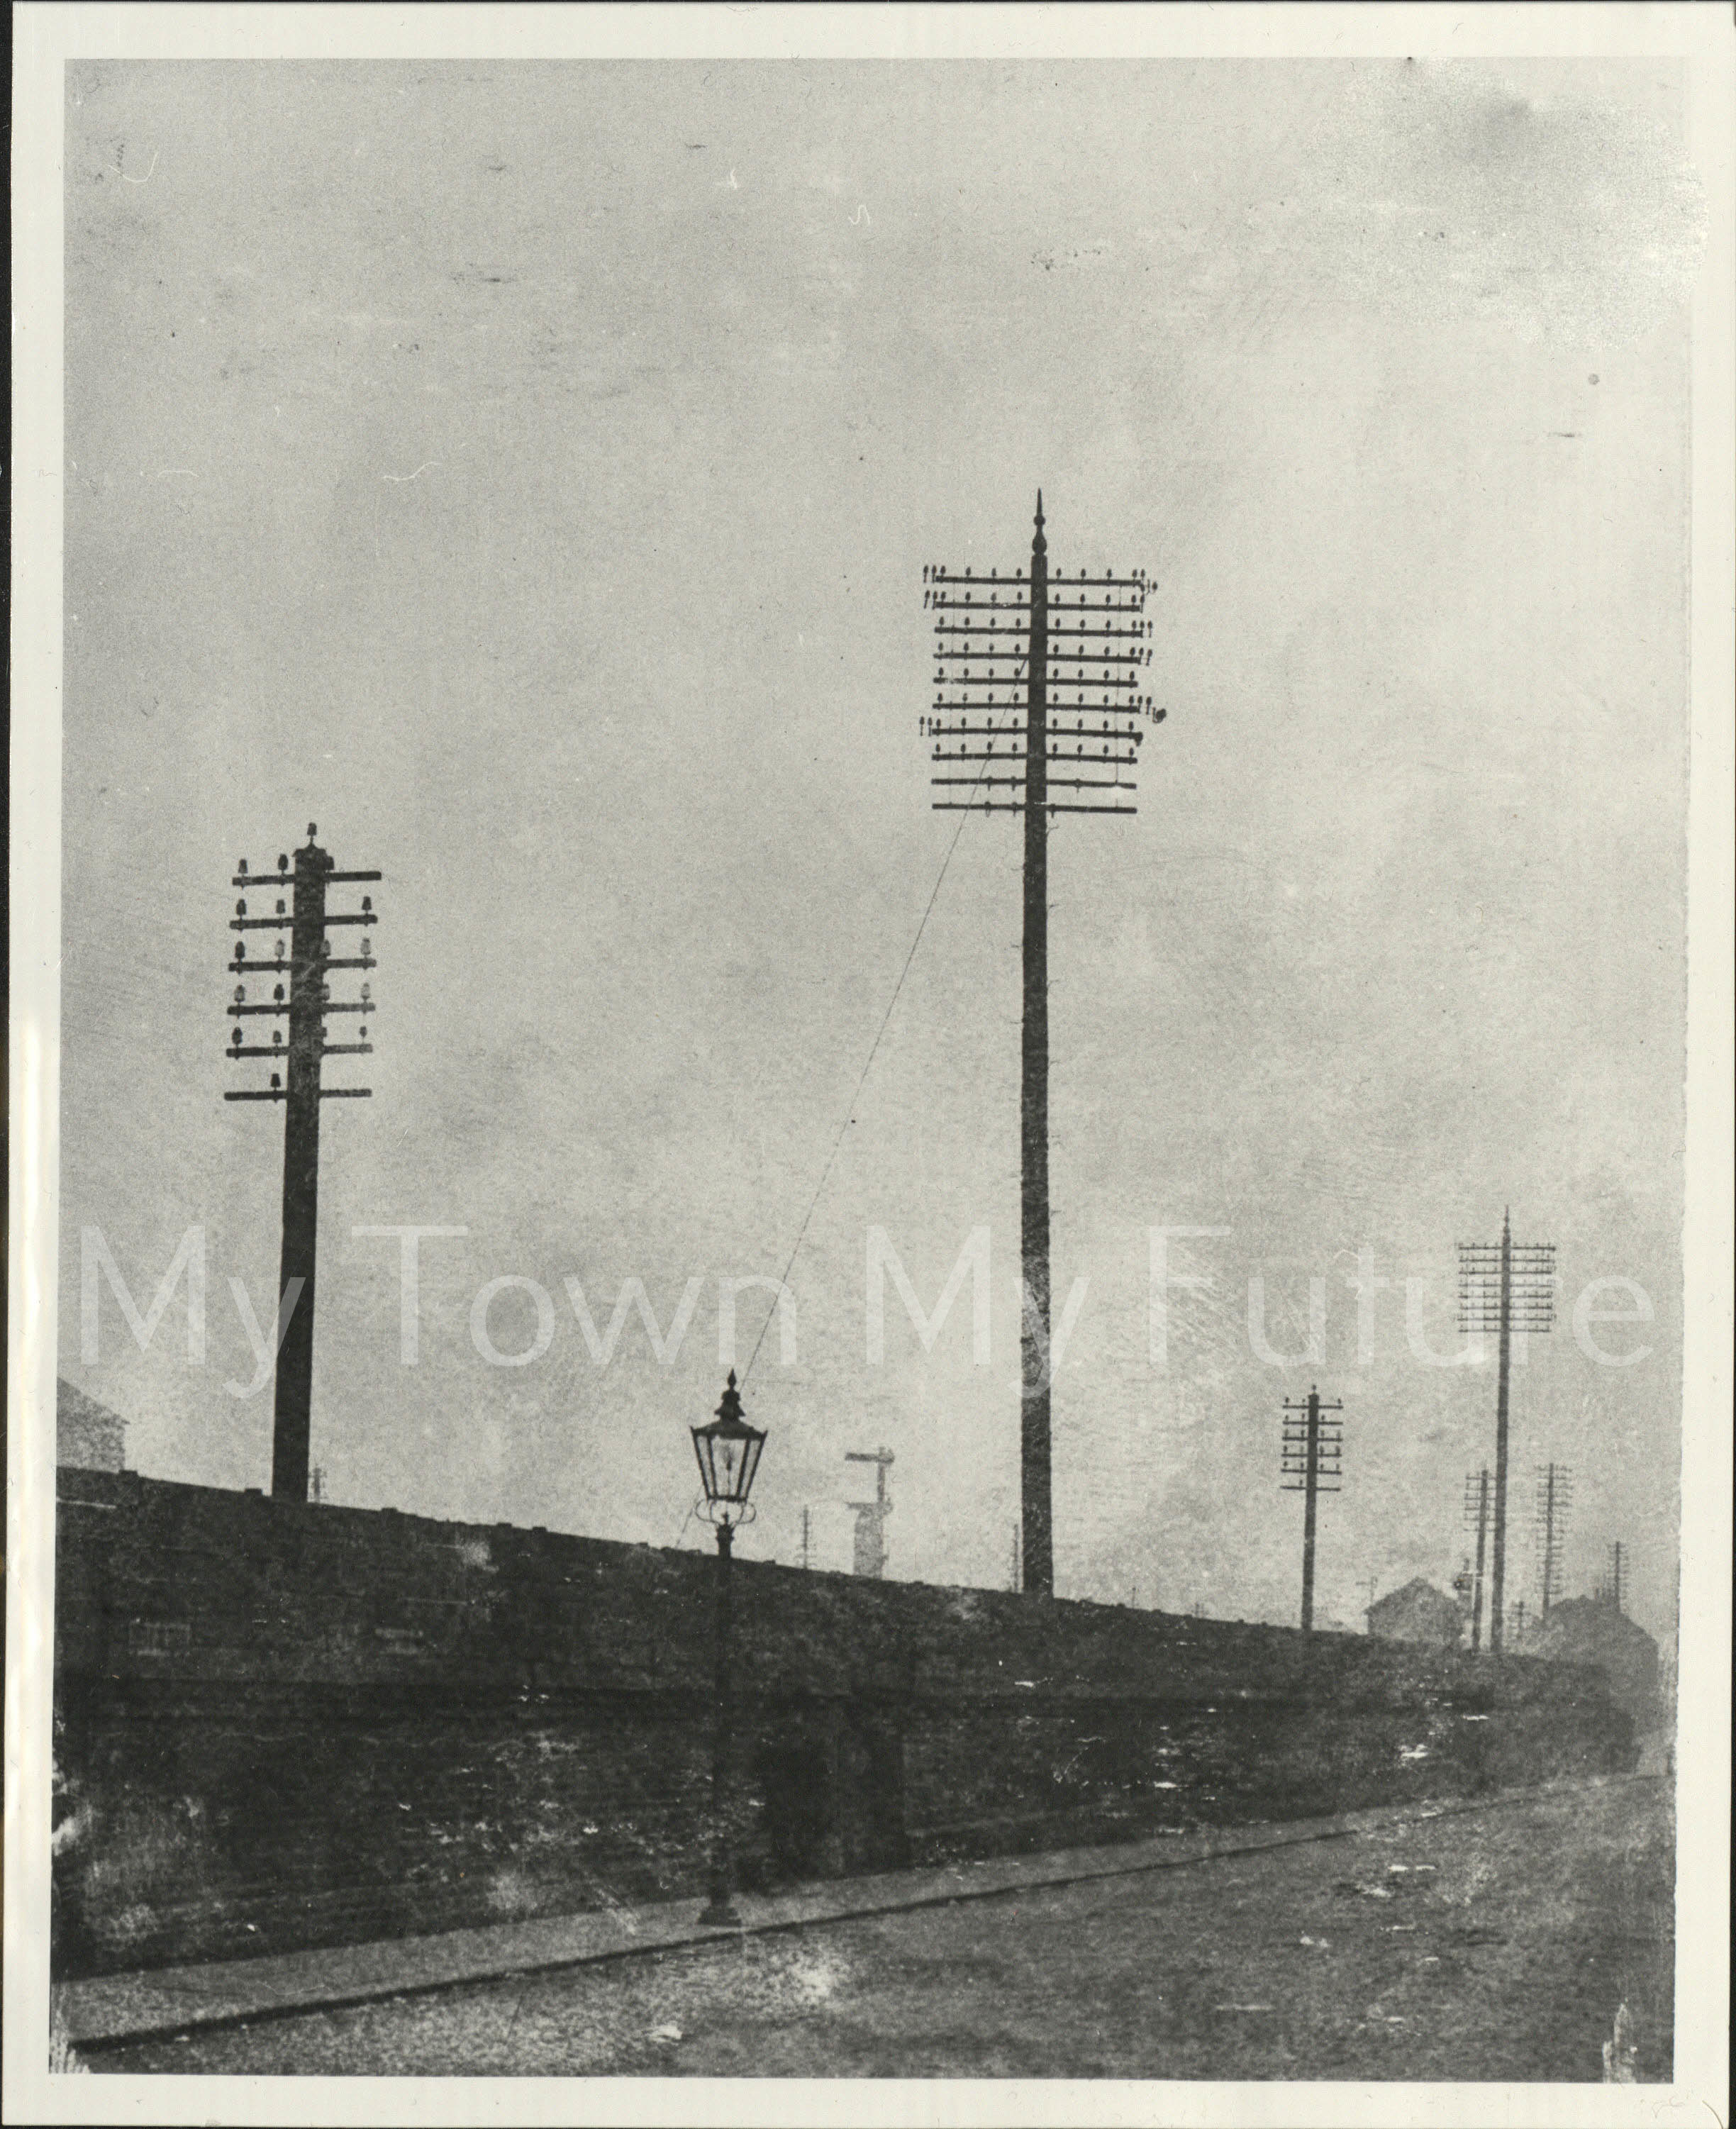 Telephone Poles, September 1910, Department of Planning - Cleveland County Council